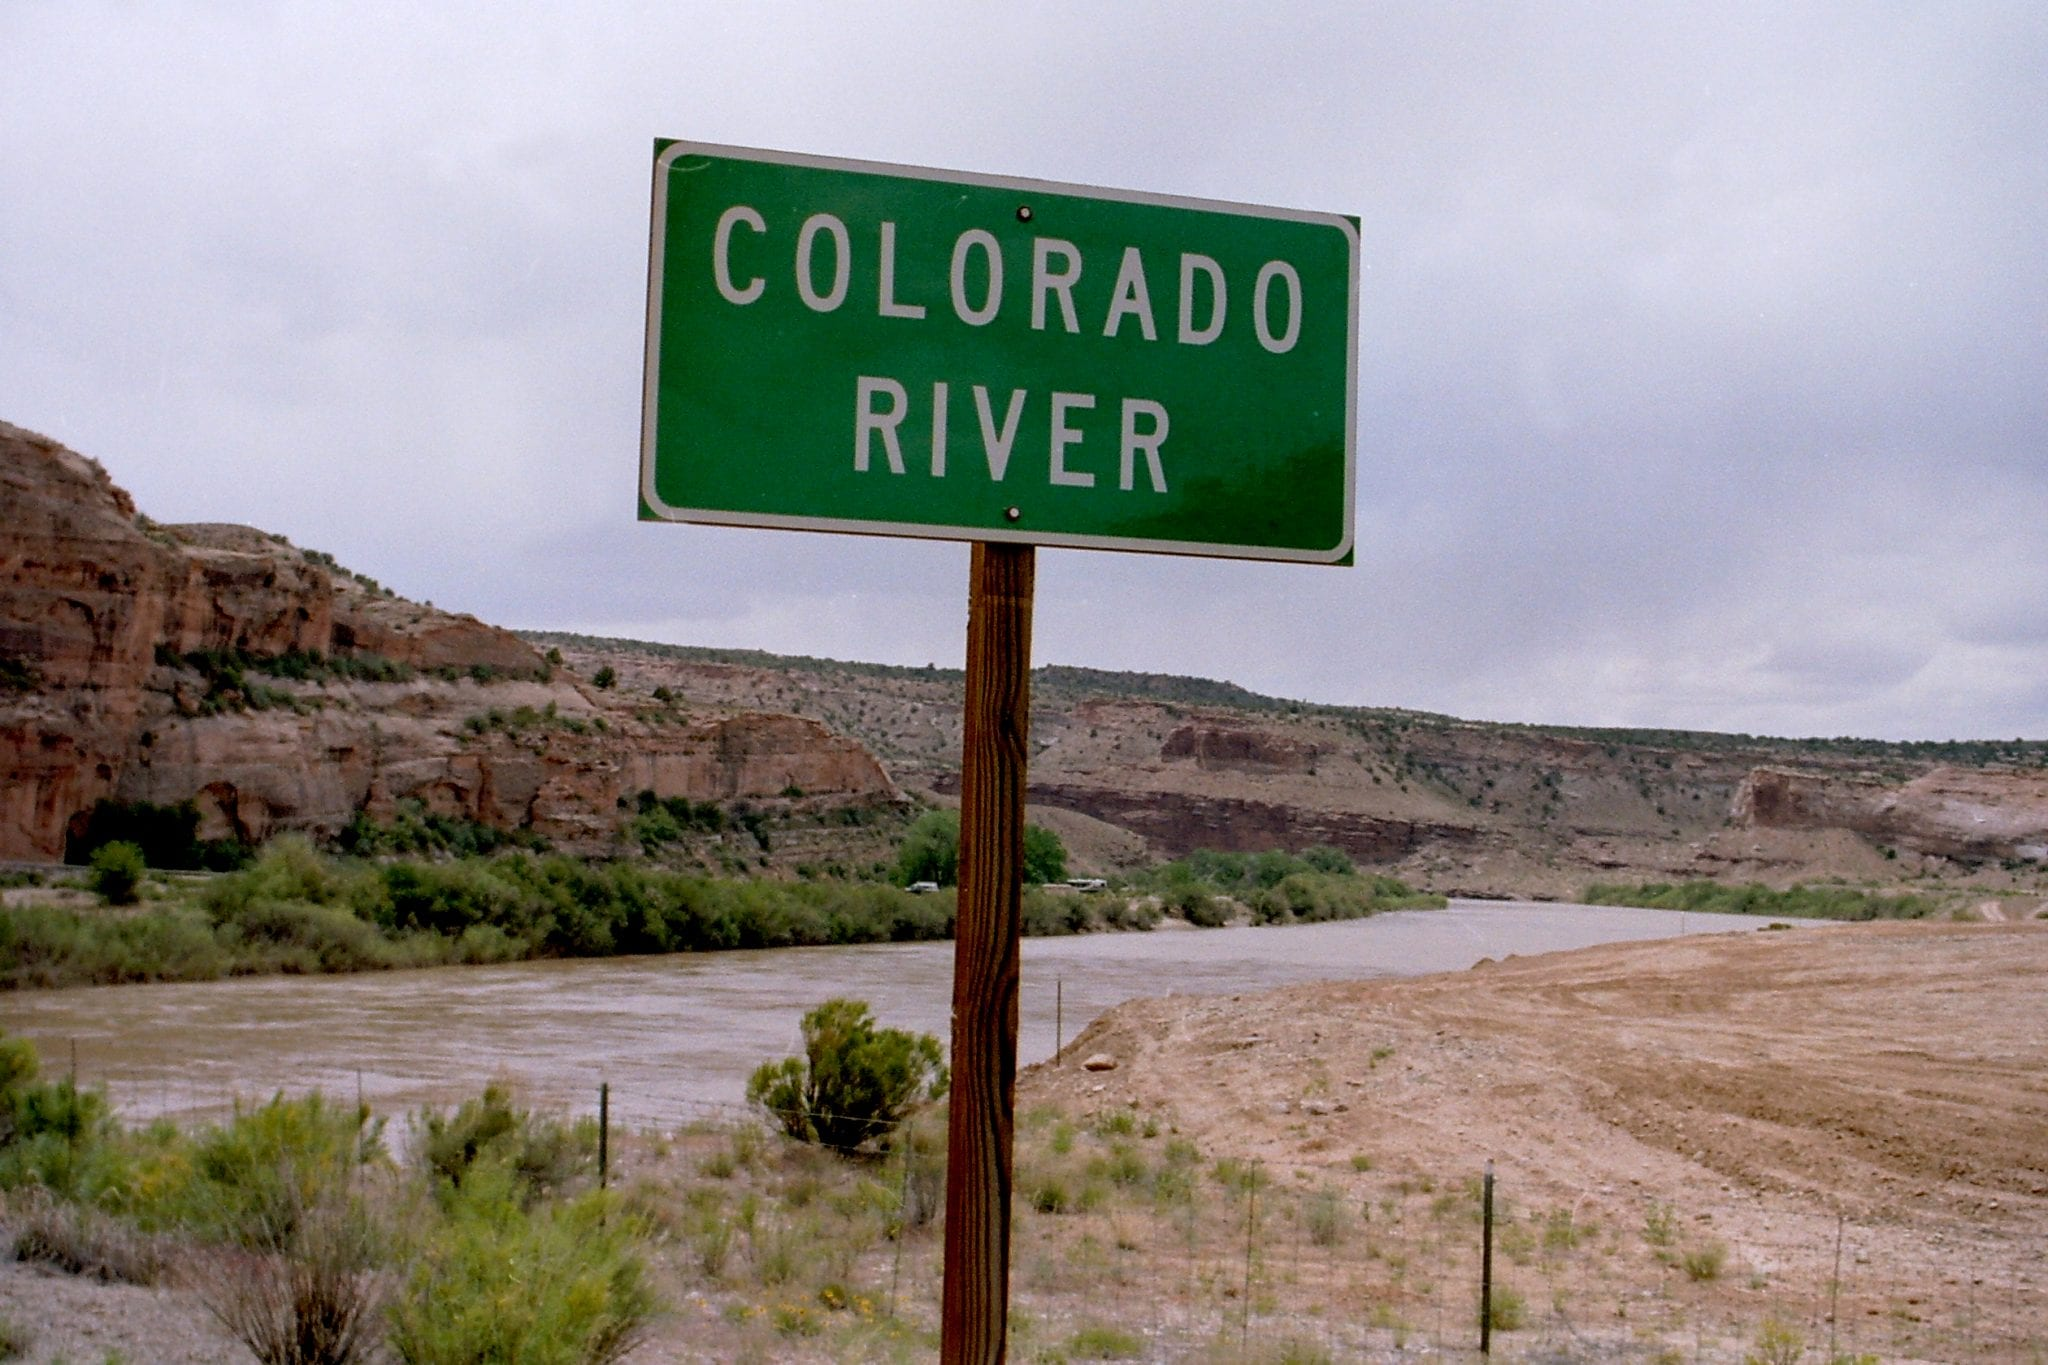 Colorado River near Moab, Utah   Members of the Great Basin Water Network are calling for moratoriums on new developments using Colorado River diversions.